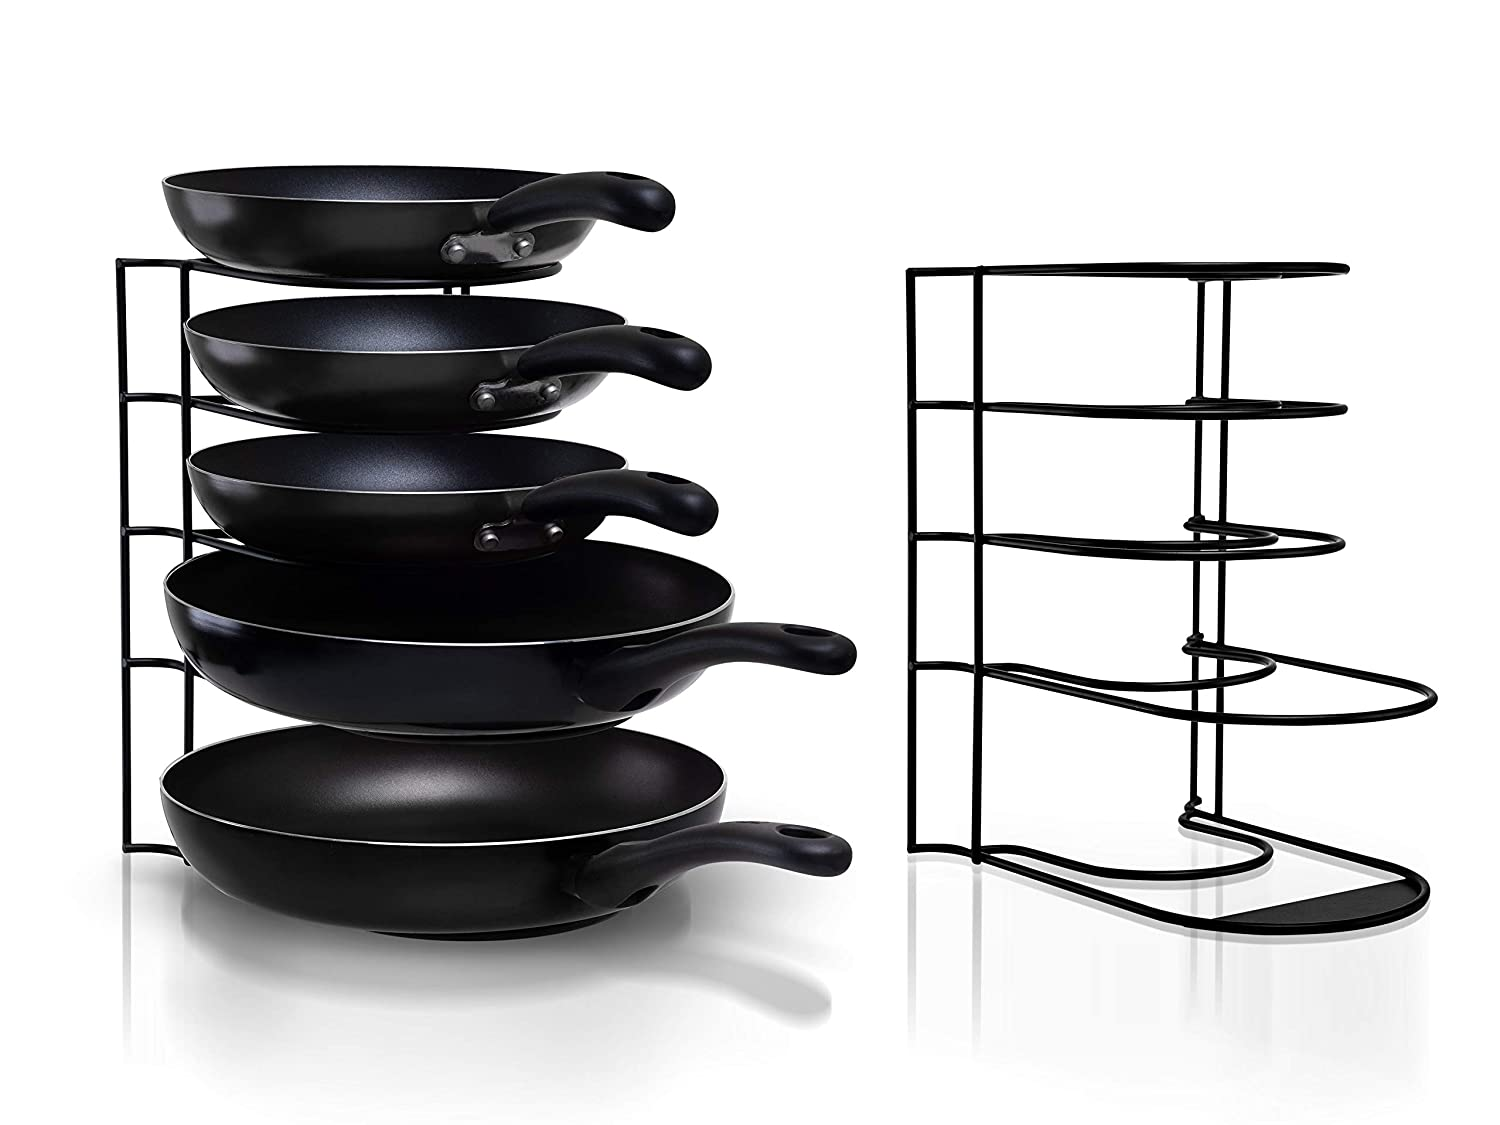 Heavy Duty Pot Rack Pan Organizer - Kitchen Organization and Storage for Frying Skillet, Baking and Casserole Dishes, Pots, Griddles, Serving Trays, and Lids - Cast Iron Standing Holder for Cookware